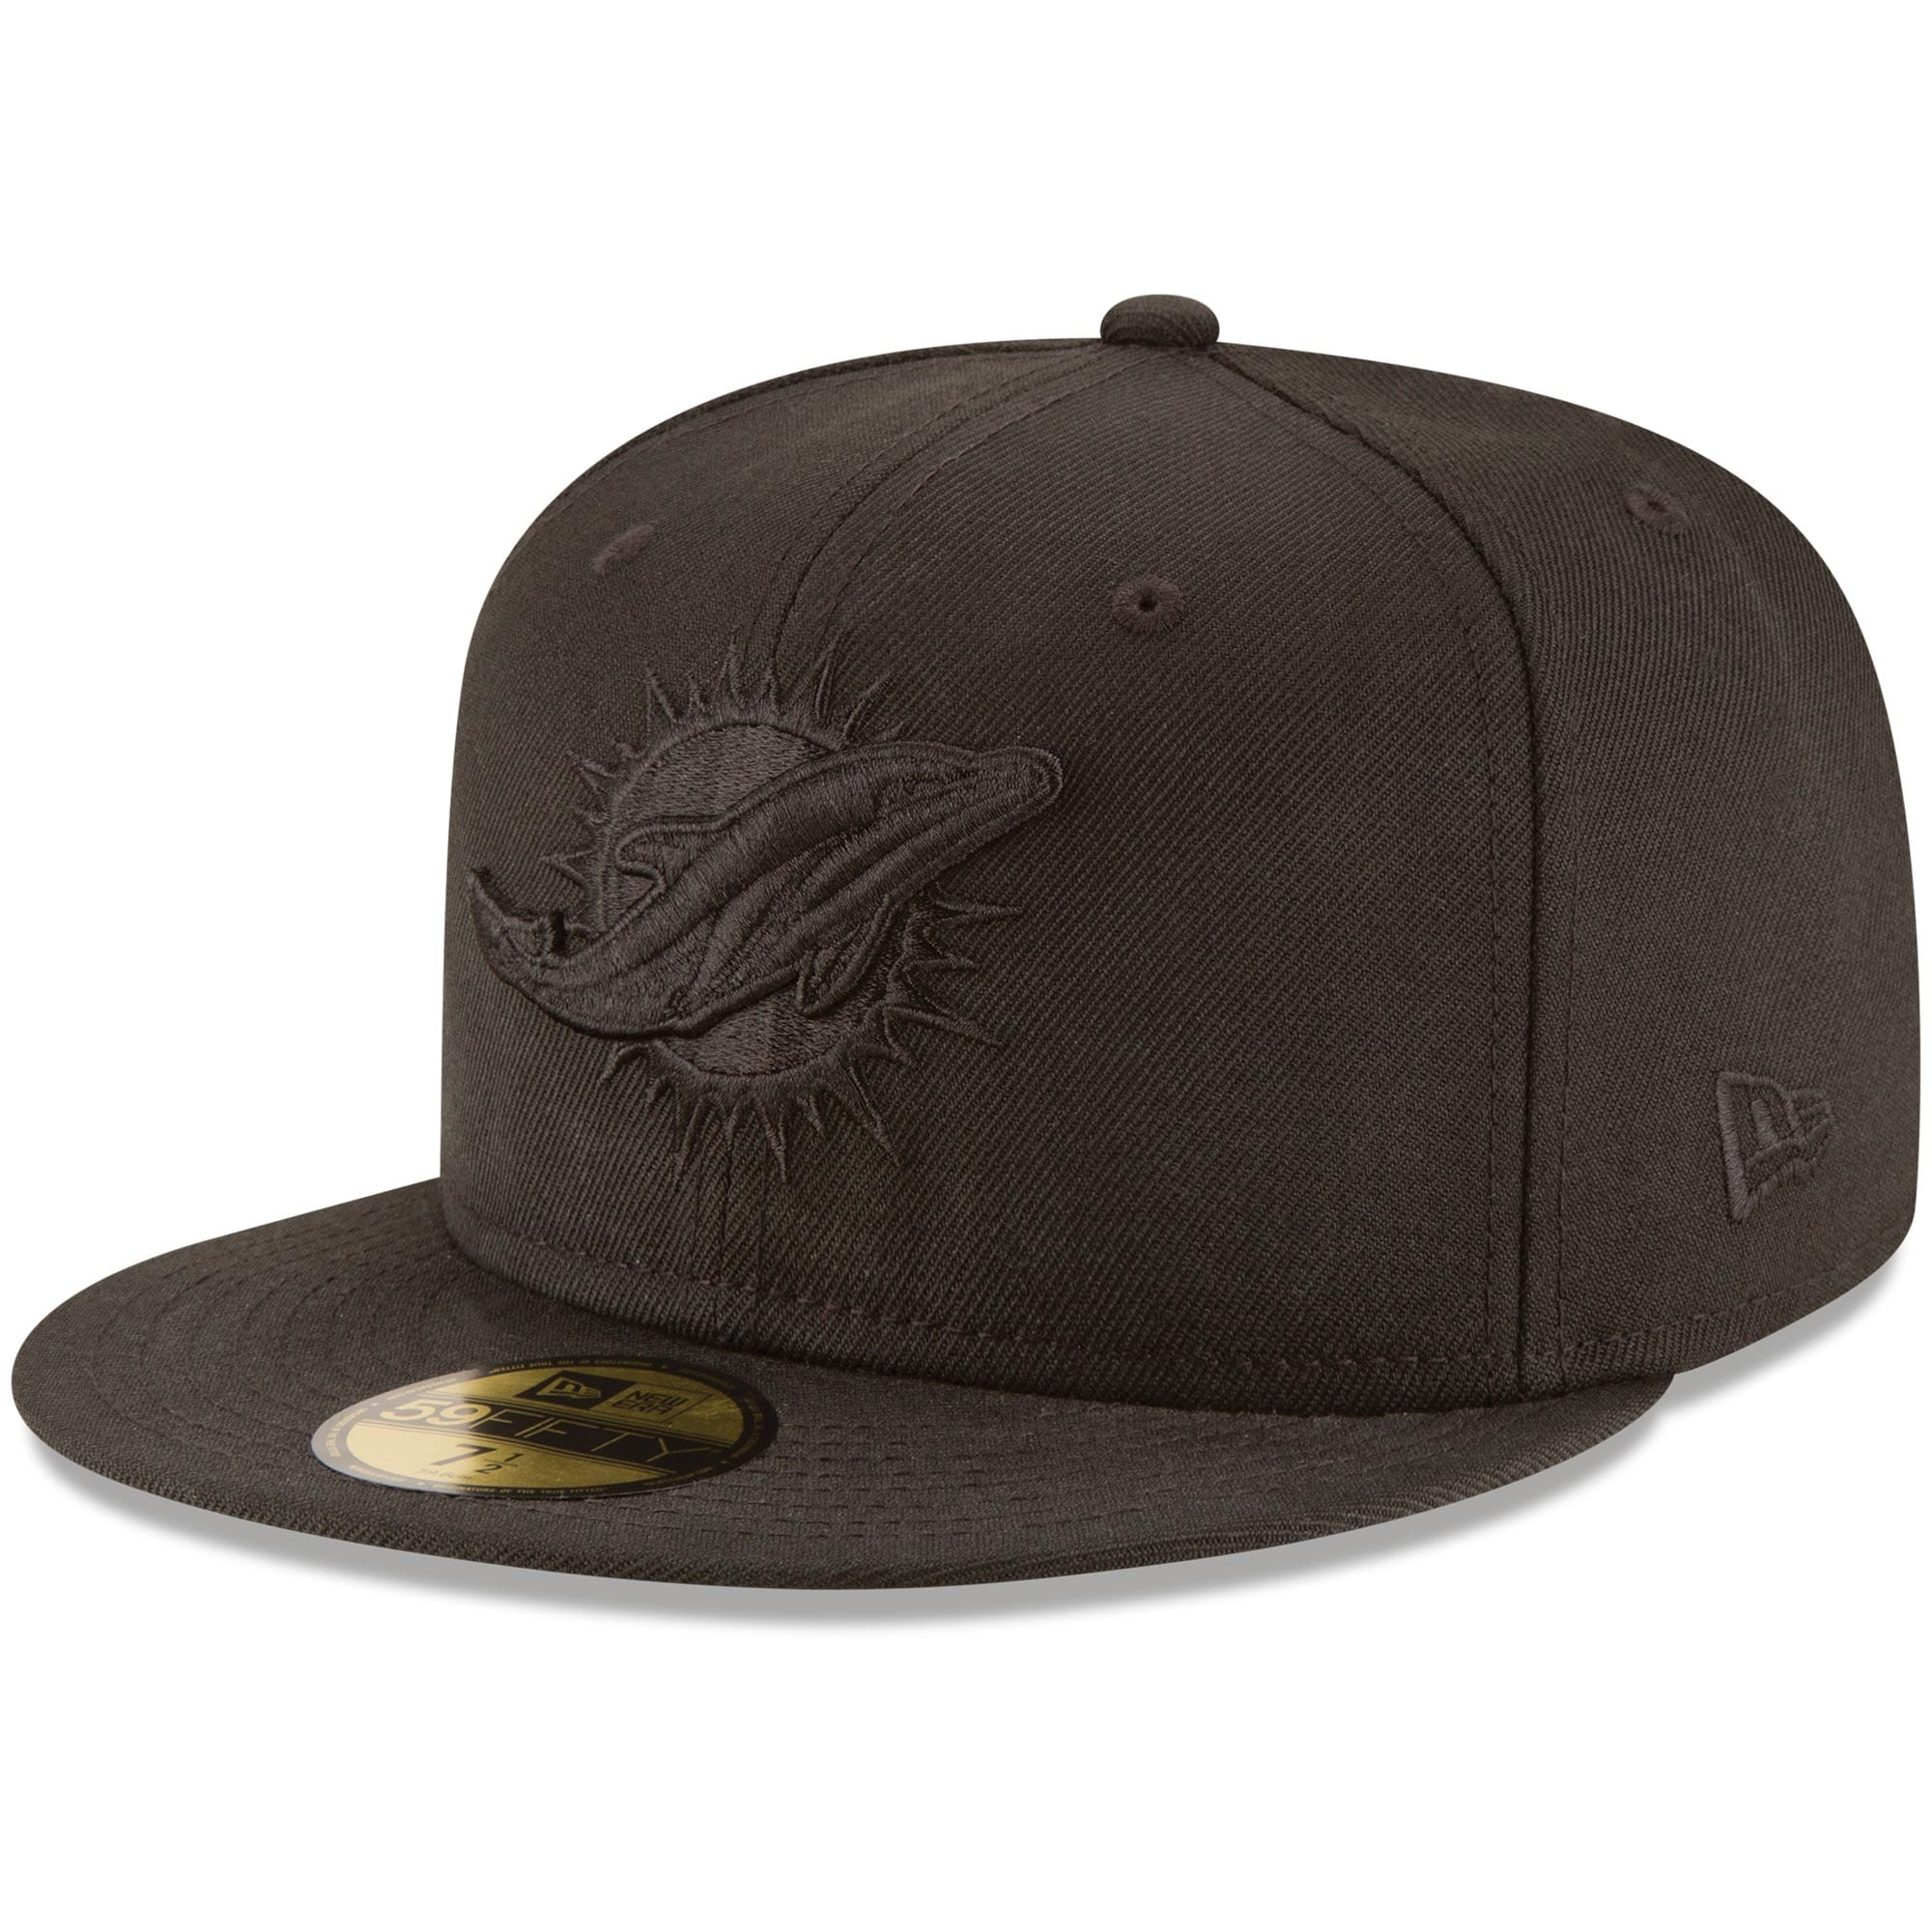 Miami Dolphins New Era Black on Black 59FIFTY Fitted Hat